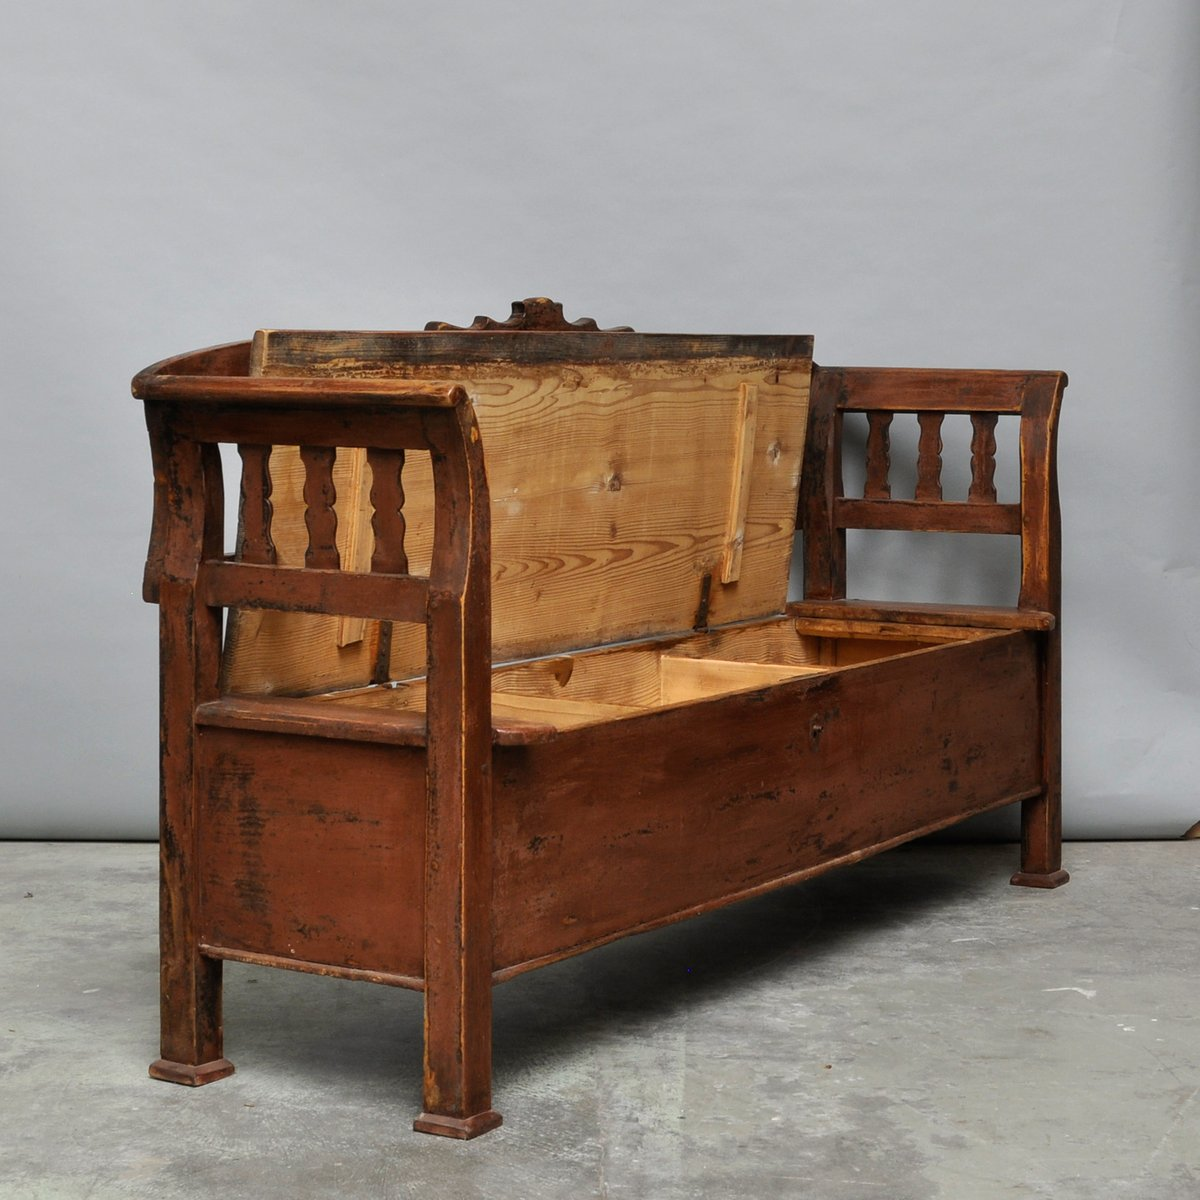 Vitage Hungarian Storage Bench 1920s For Sale At Pamono